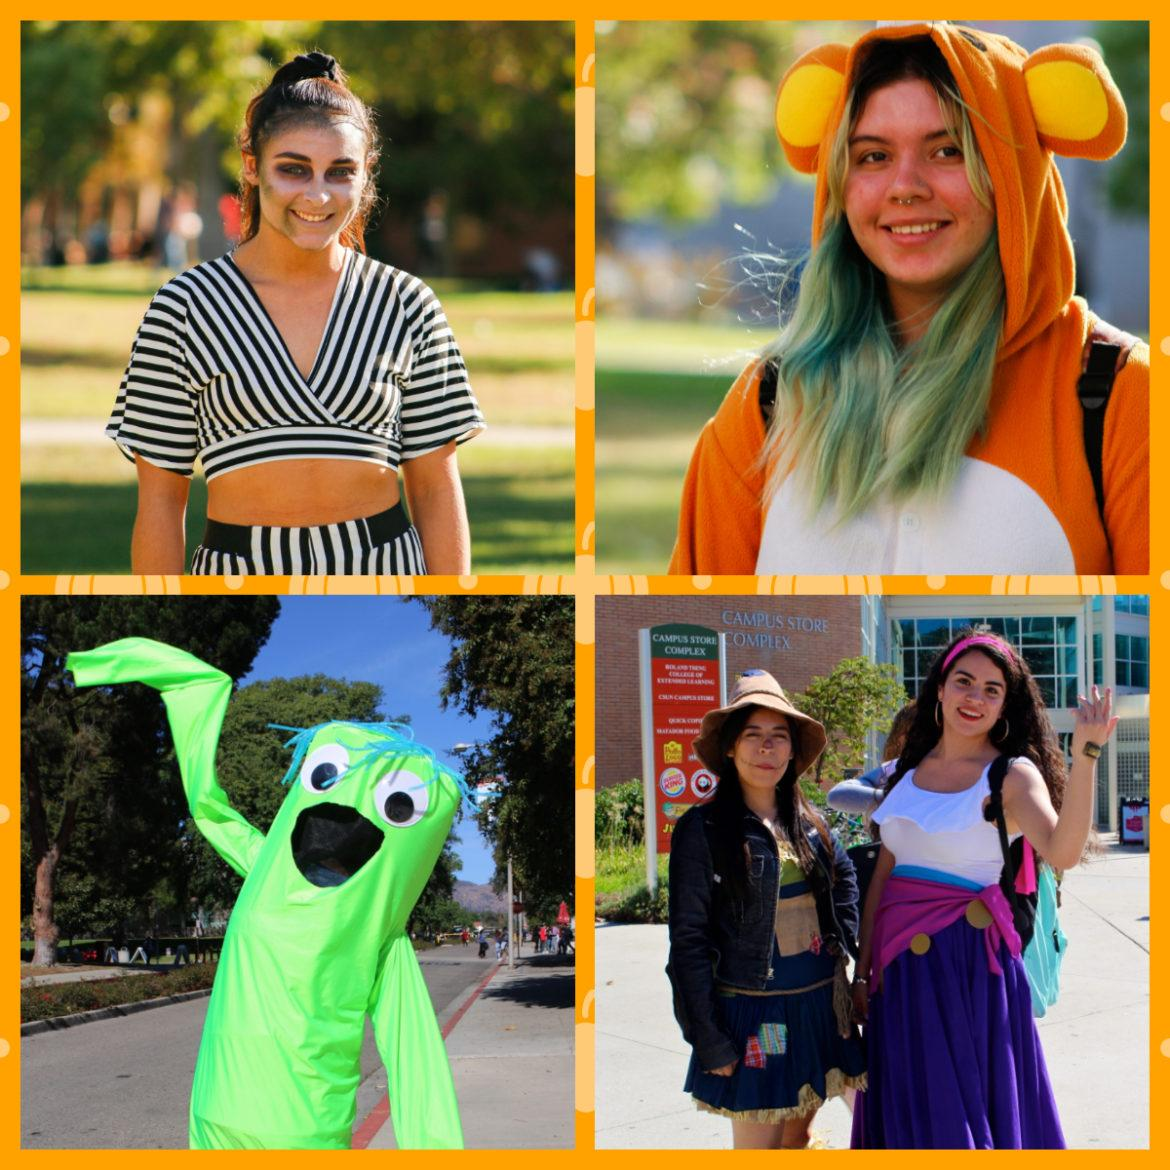 A+collage+of+costumed+students+featured+below.+Photo+Credits%3A+Max+Sullivan+and+Yomira+Saiqui.+